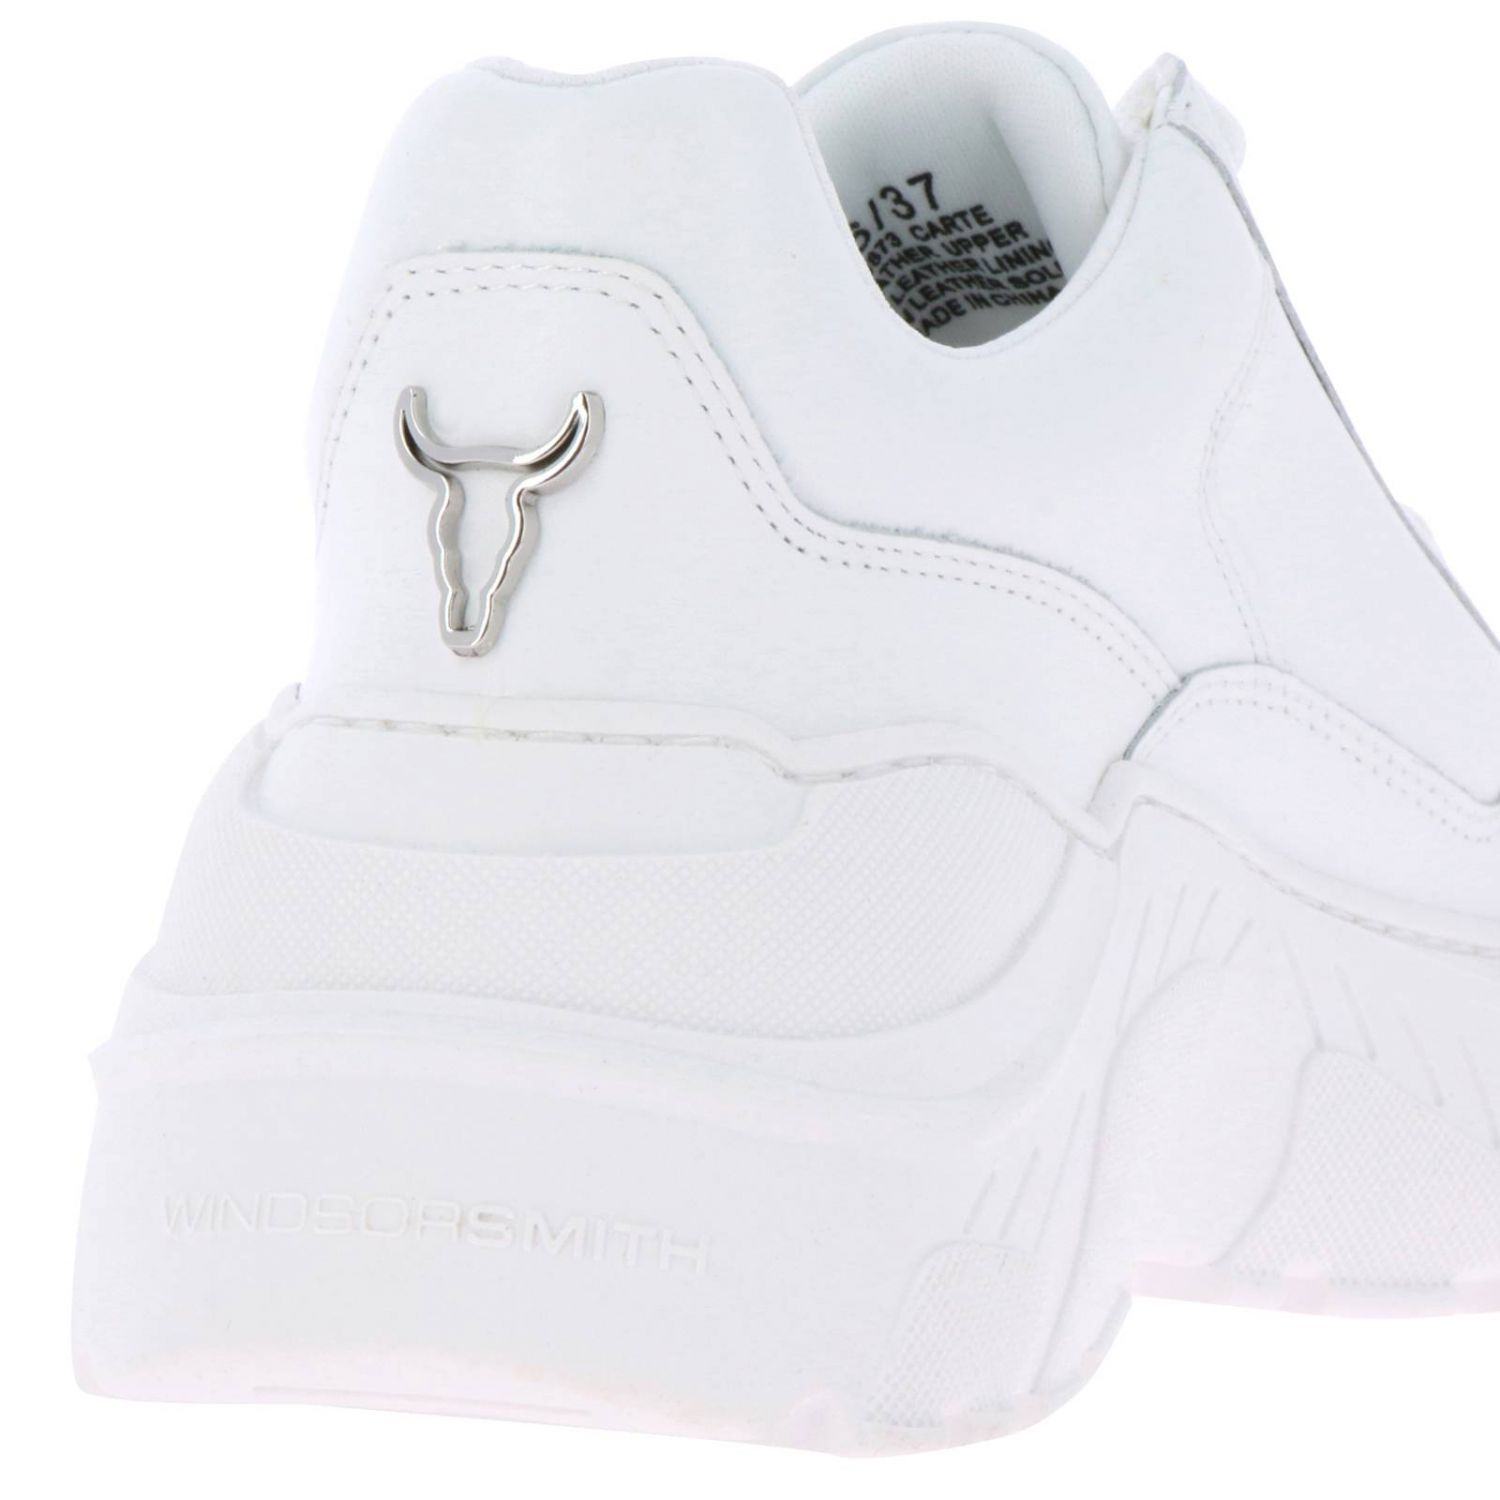 Sneakers women Windsorsmith white 4